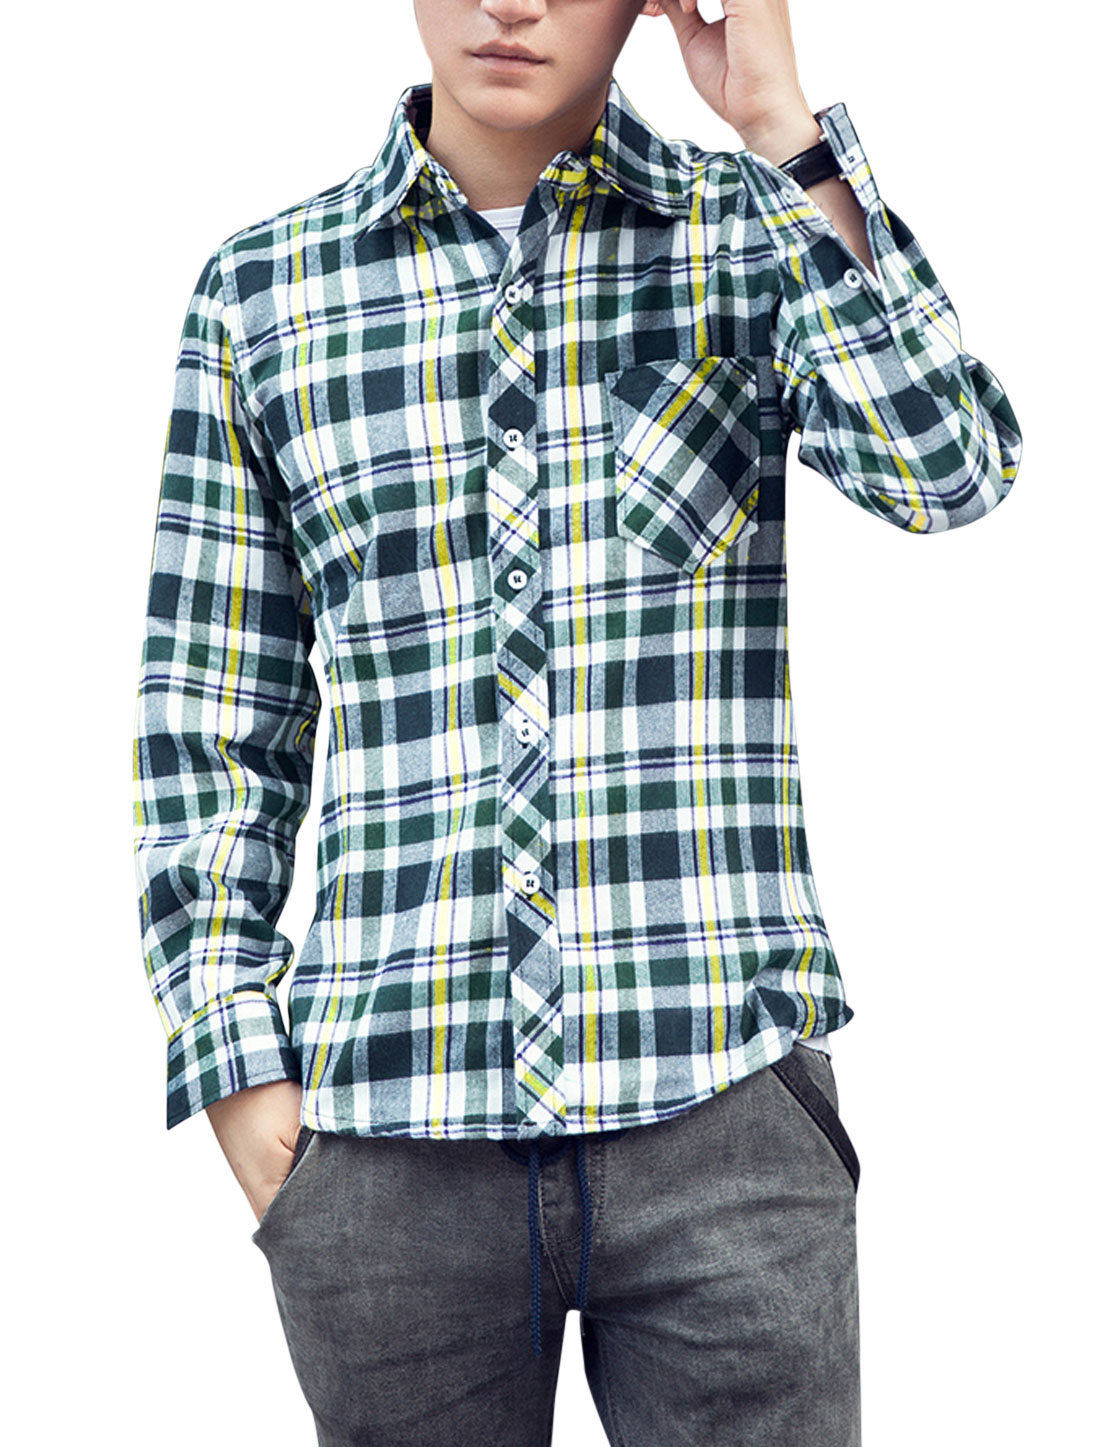 Men All Over Check Pattern Chest Pocket Button-Front Casual Shirt Green Navy Blue M